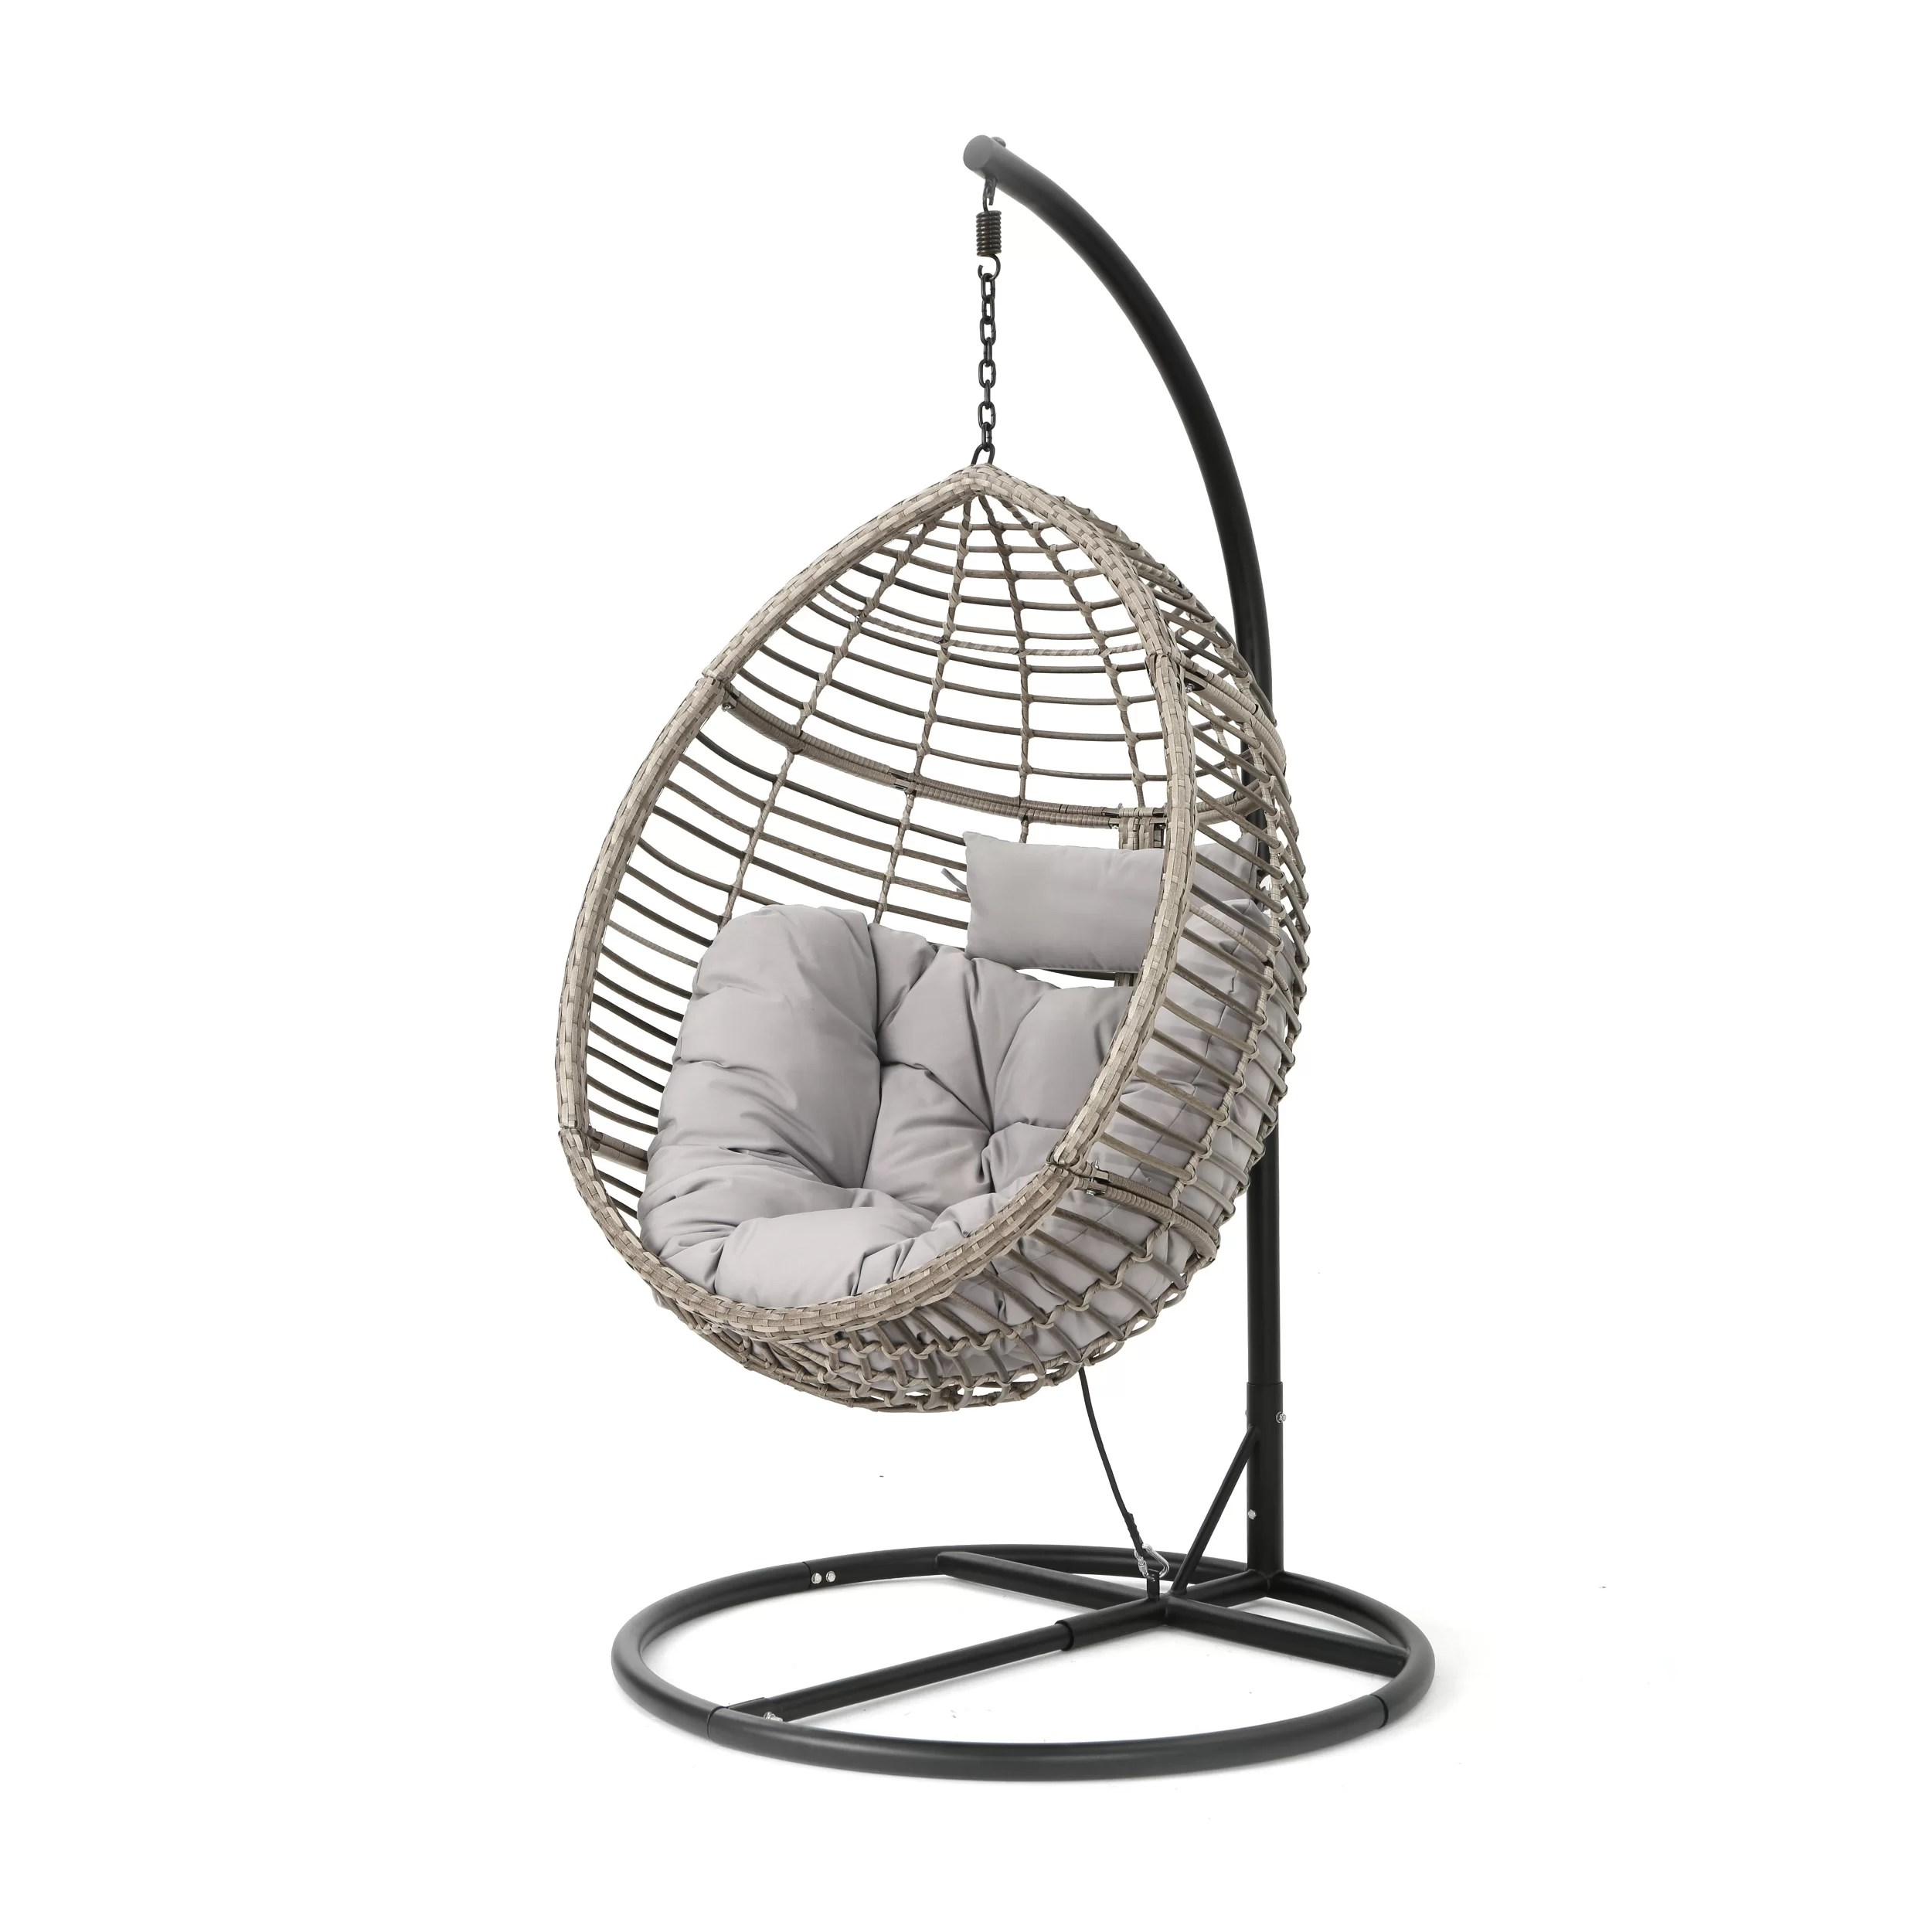 Swinging Chair Weller Outdoor Wicker Basket Swing Chair With Stand